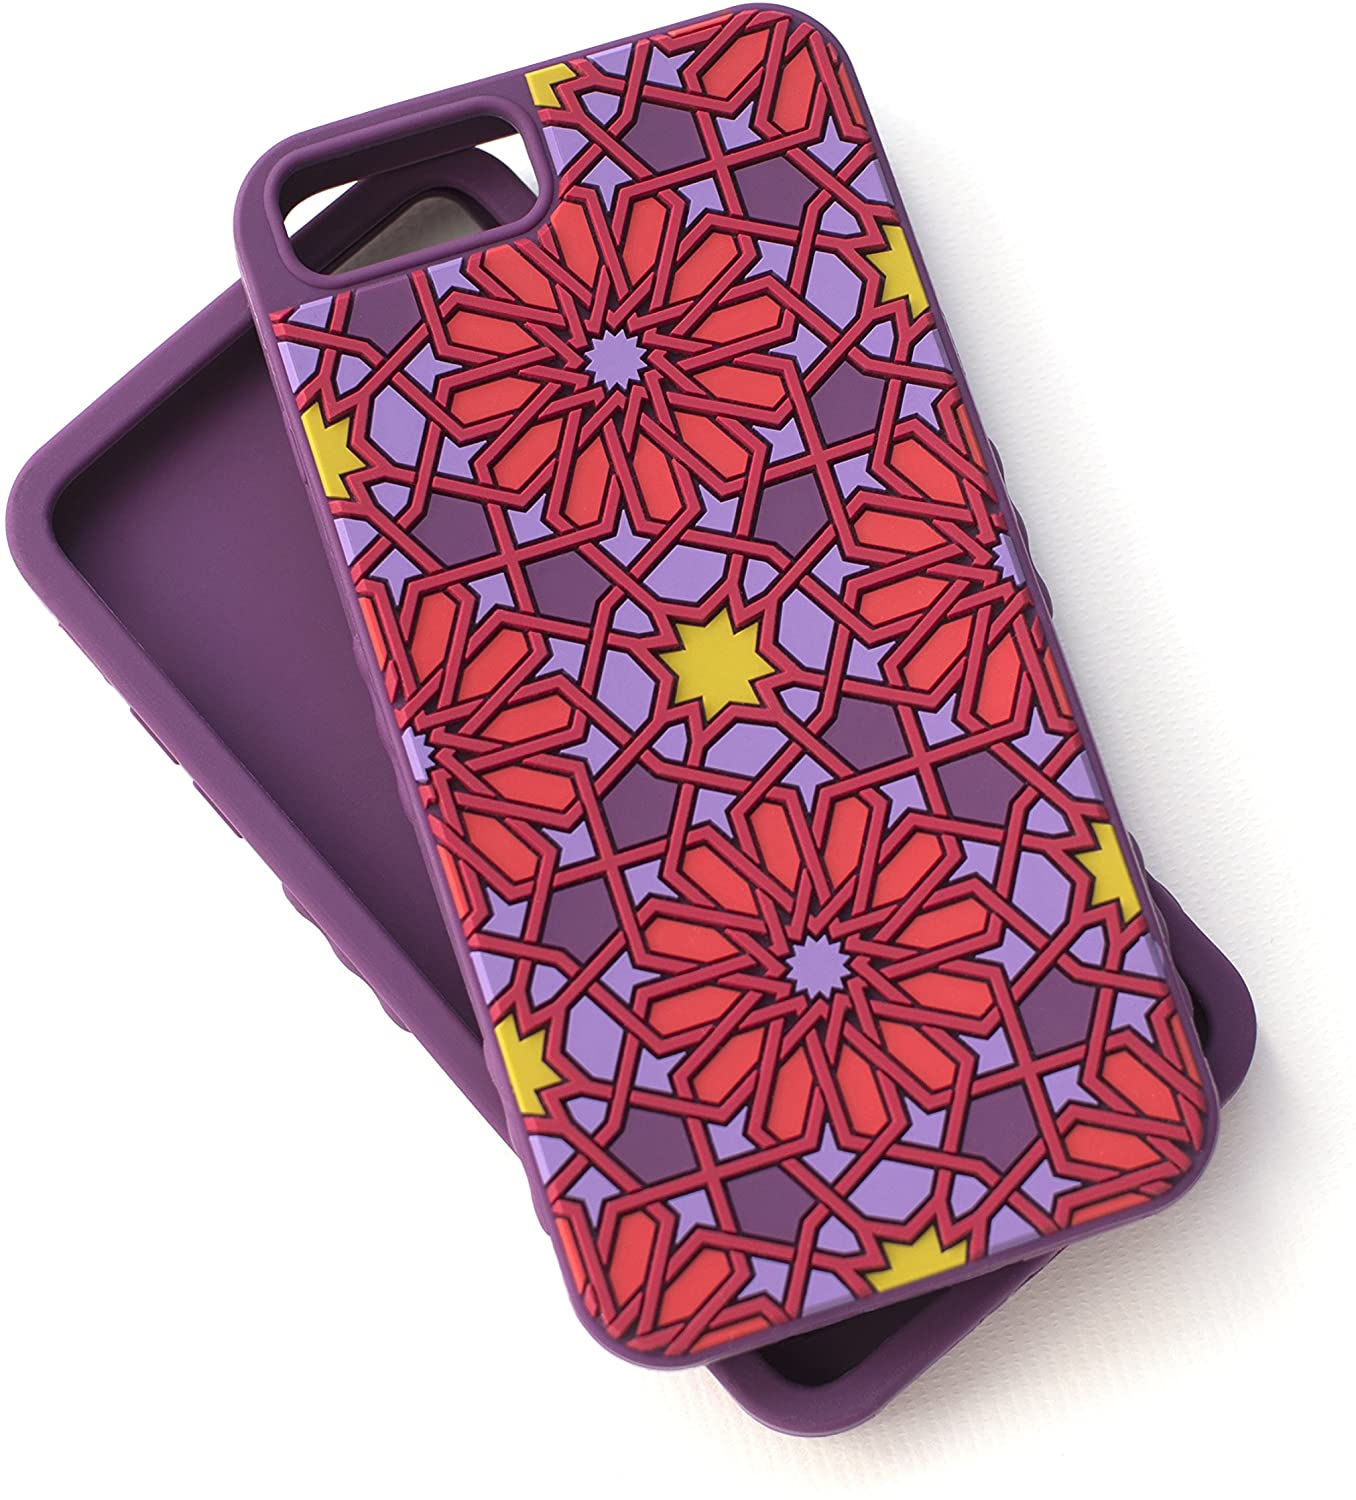 Tech Candy iPhone 6 Plus 6+ iPhone 7 Plus 7+ iPhone 8 Plus 8+ Phone Kaleidoscopic Case Soft Silicone 3D Texture Protective Durable Pretty Designer Girls Teenagers Womens Shock Absorbing Beautiful Pur